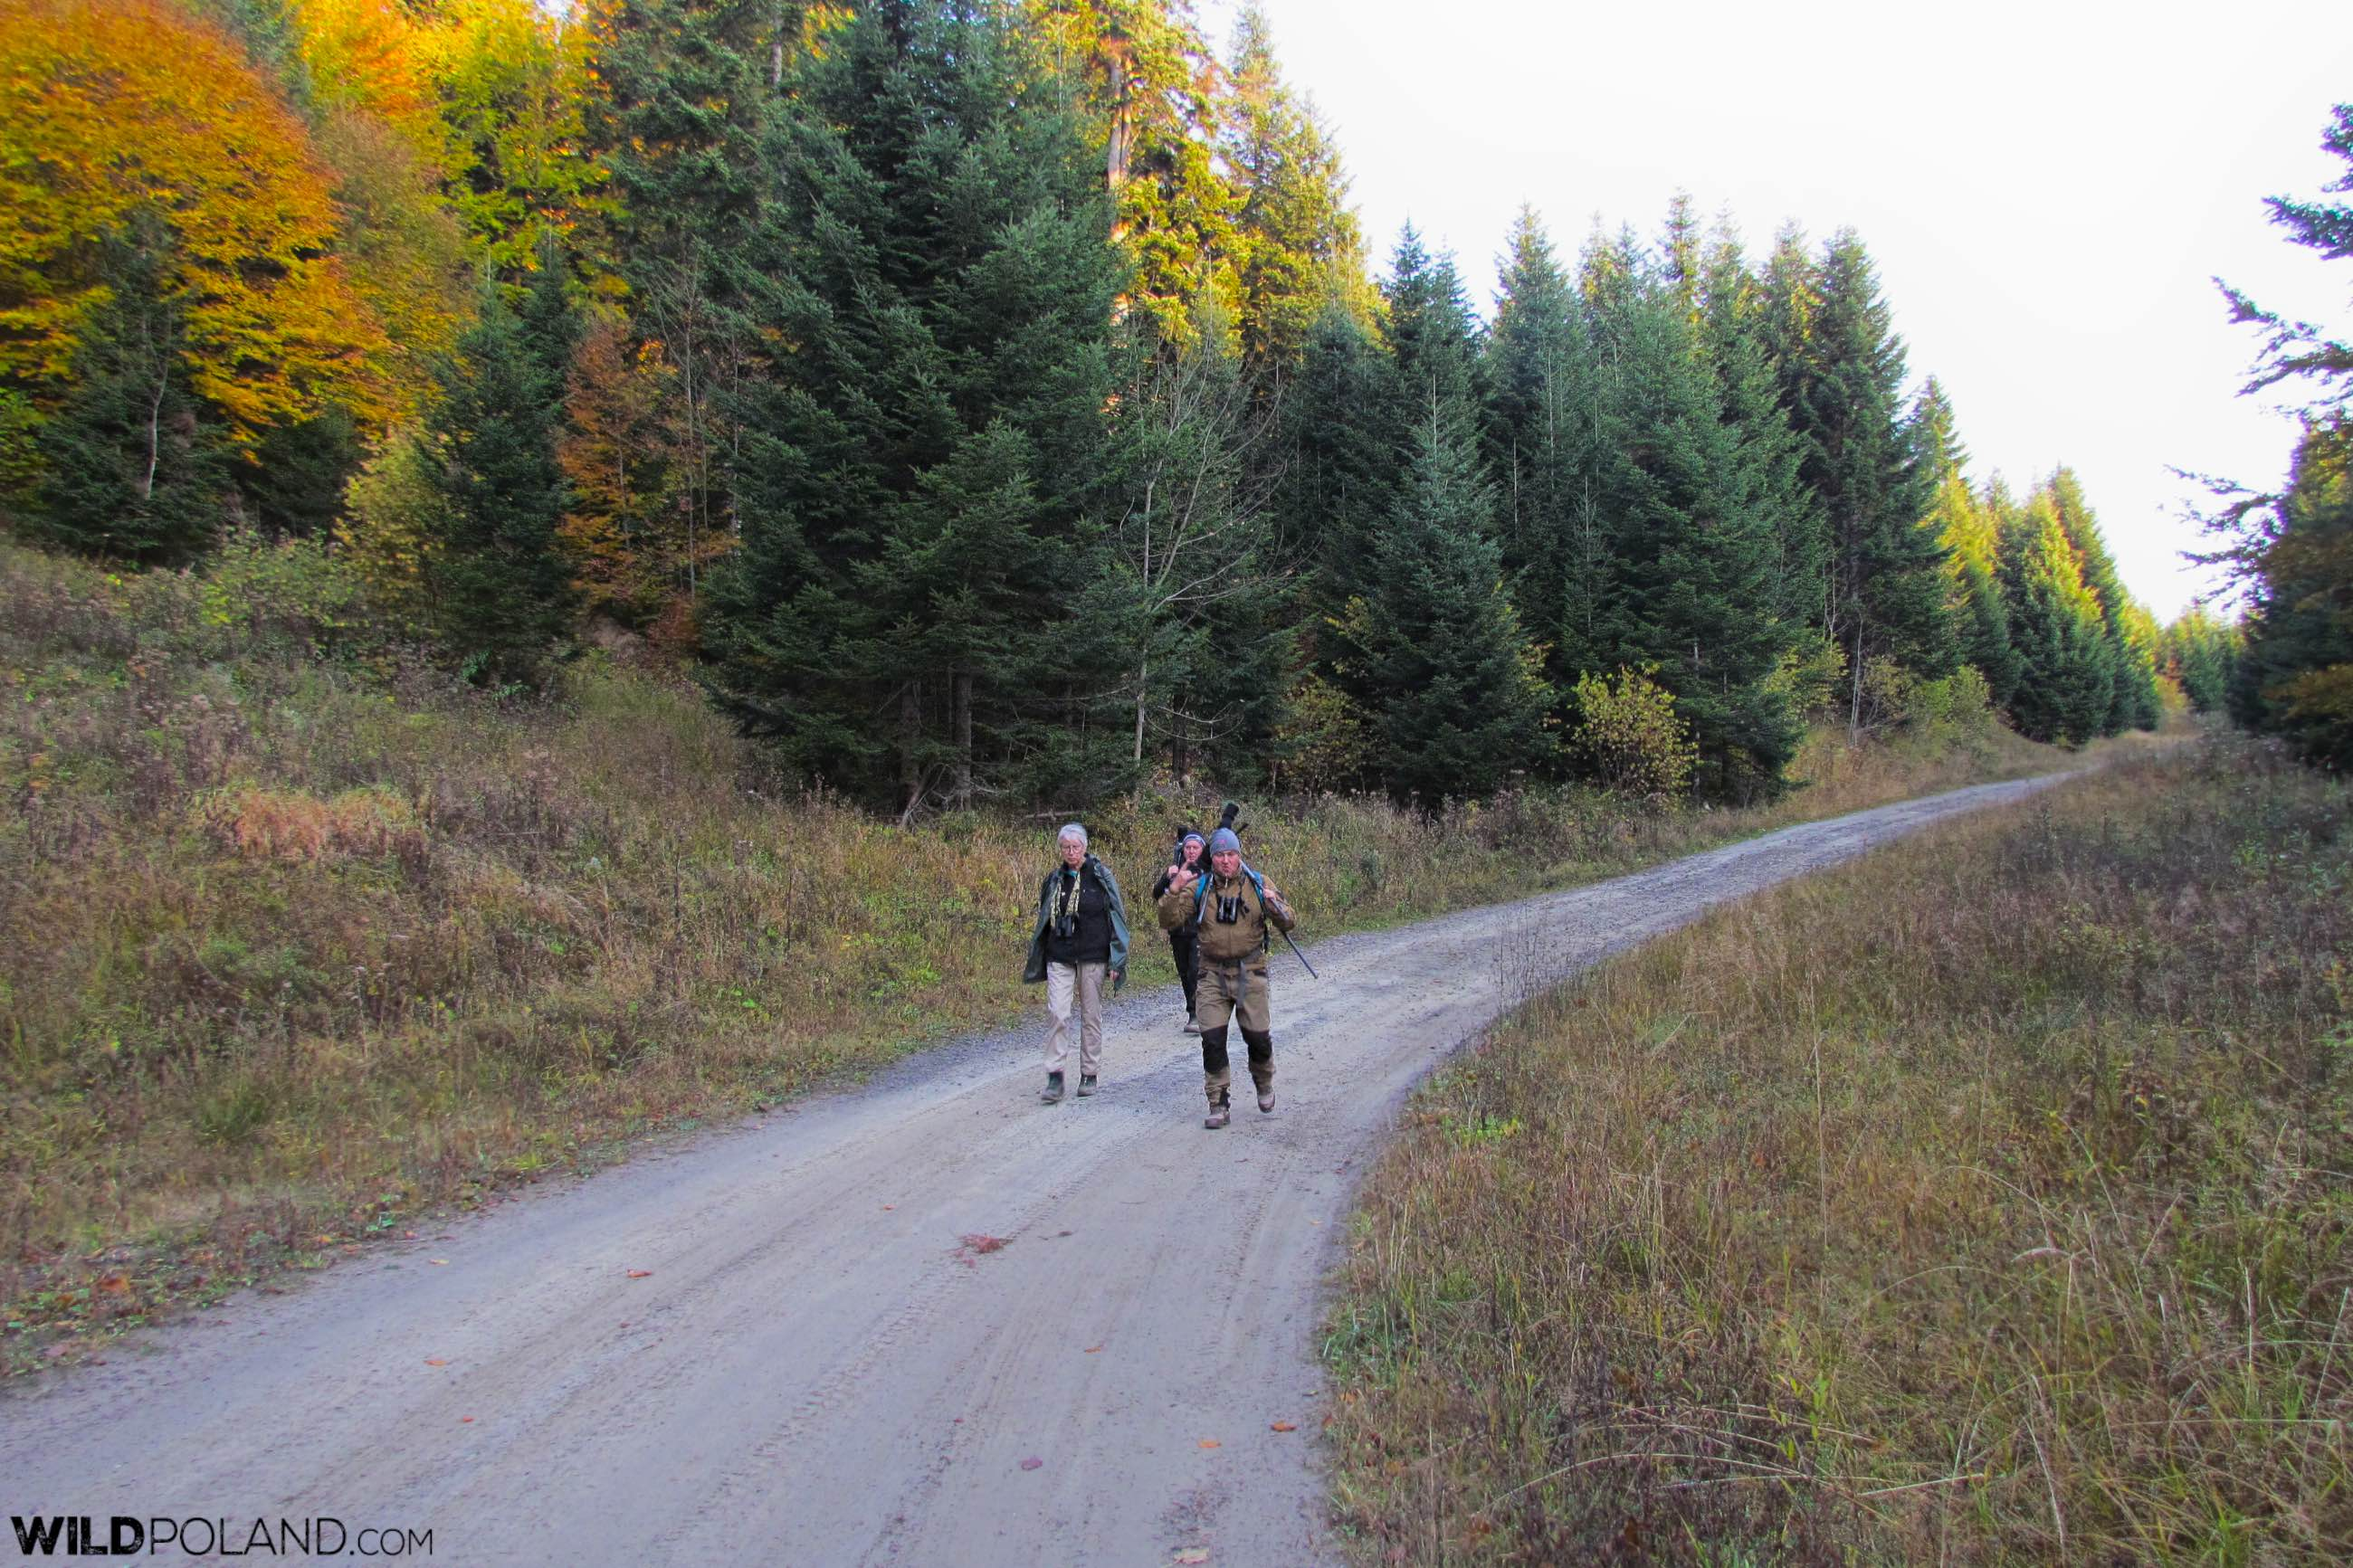 Hiking in the Carpathiands in search of large mammals